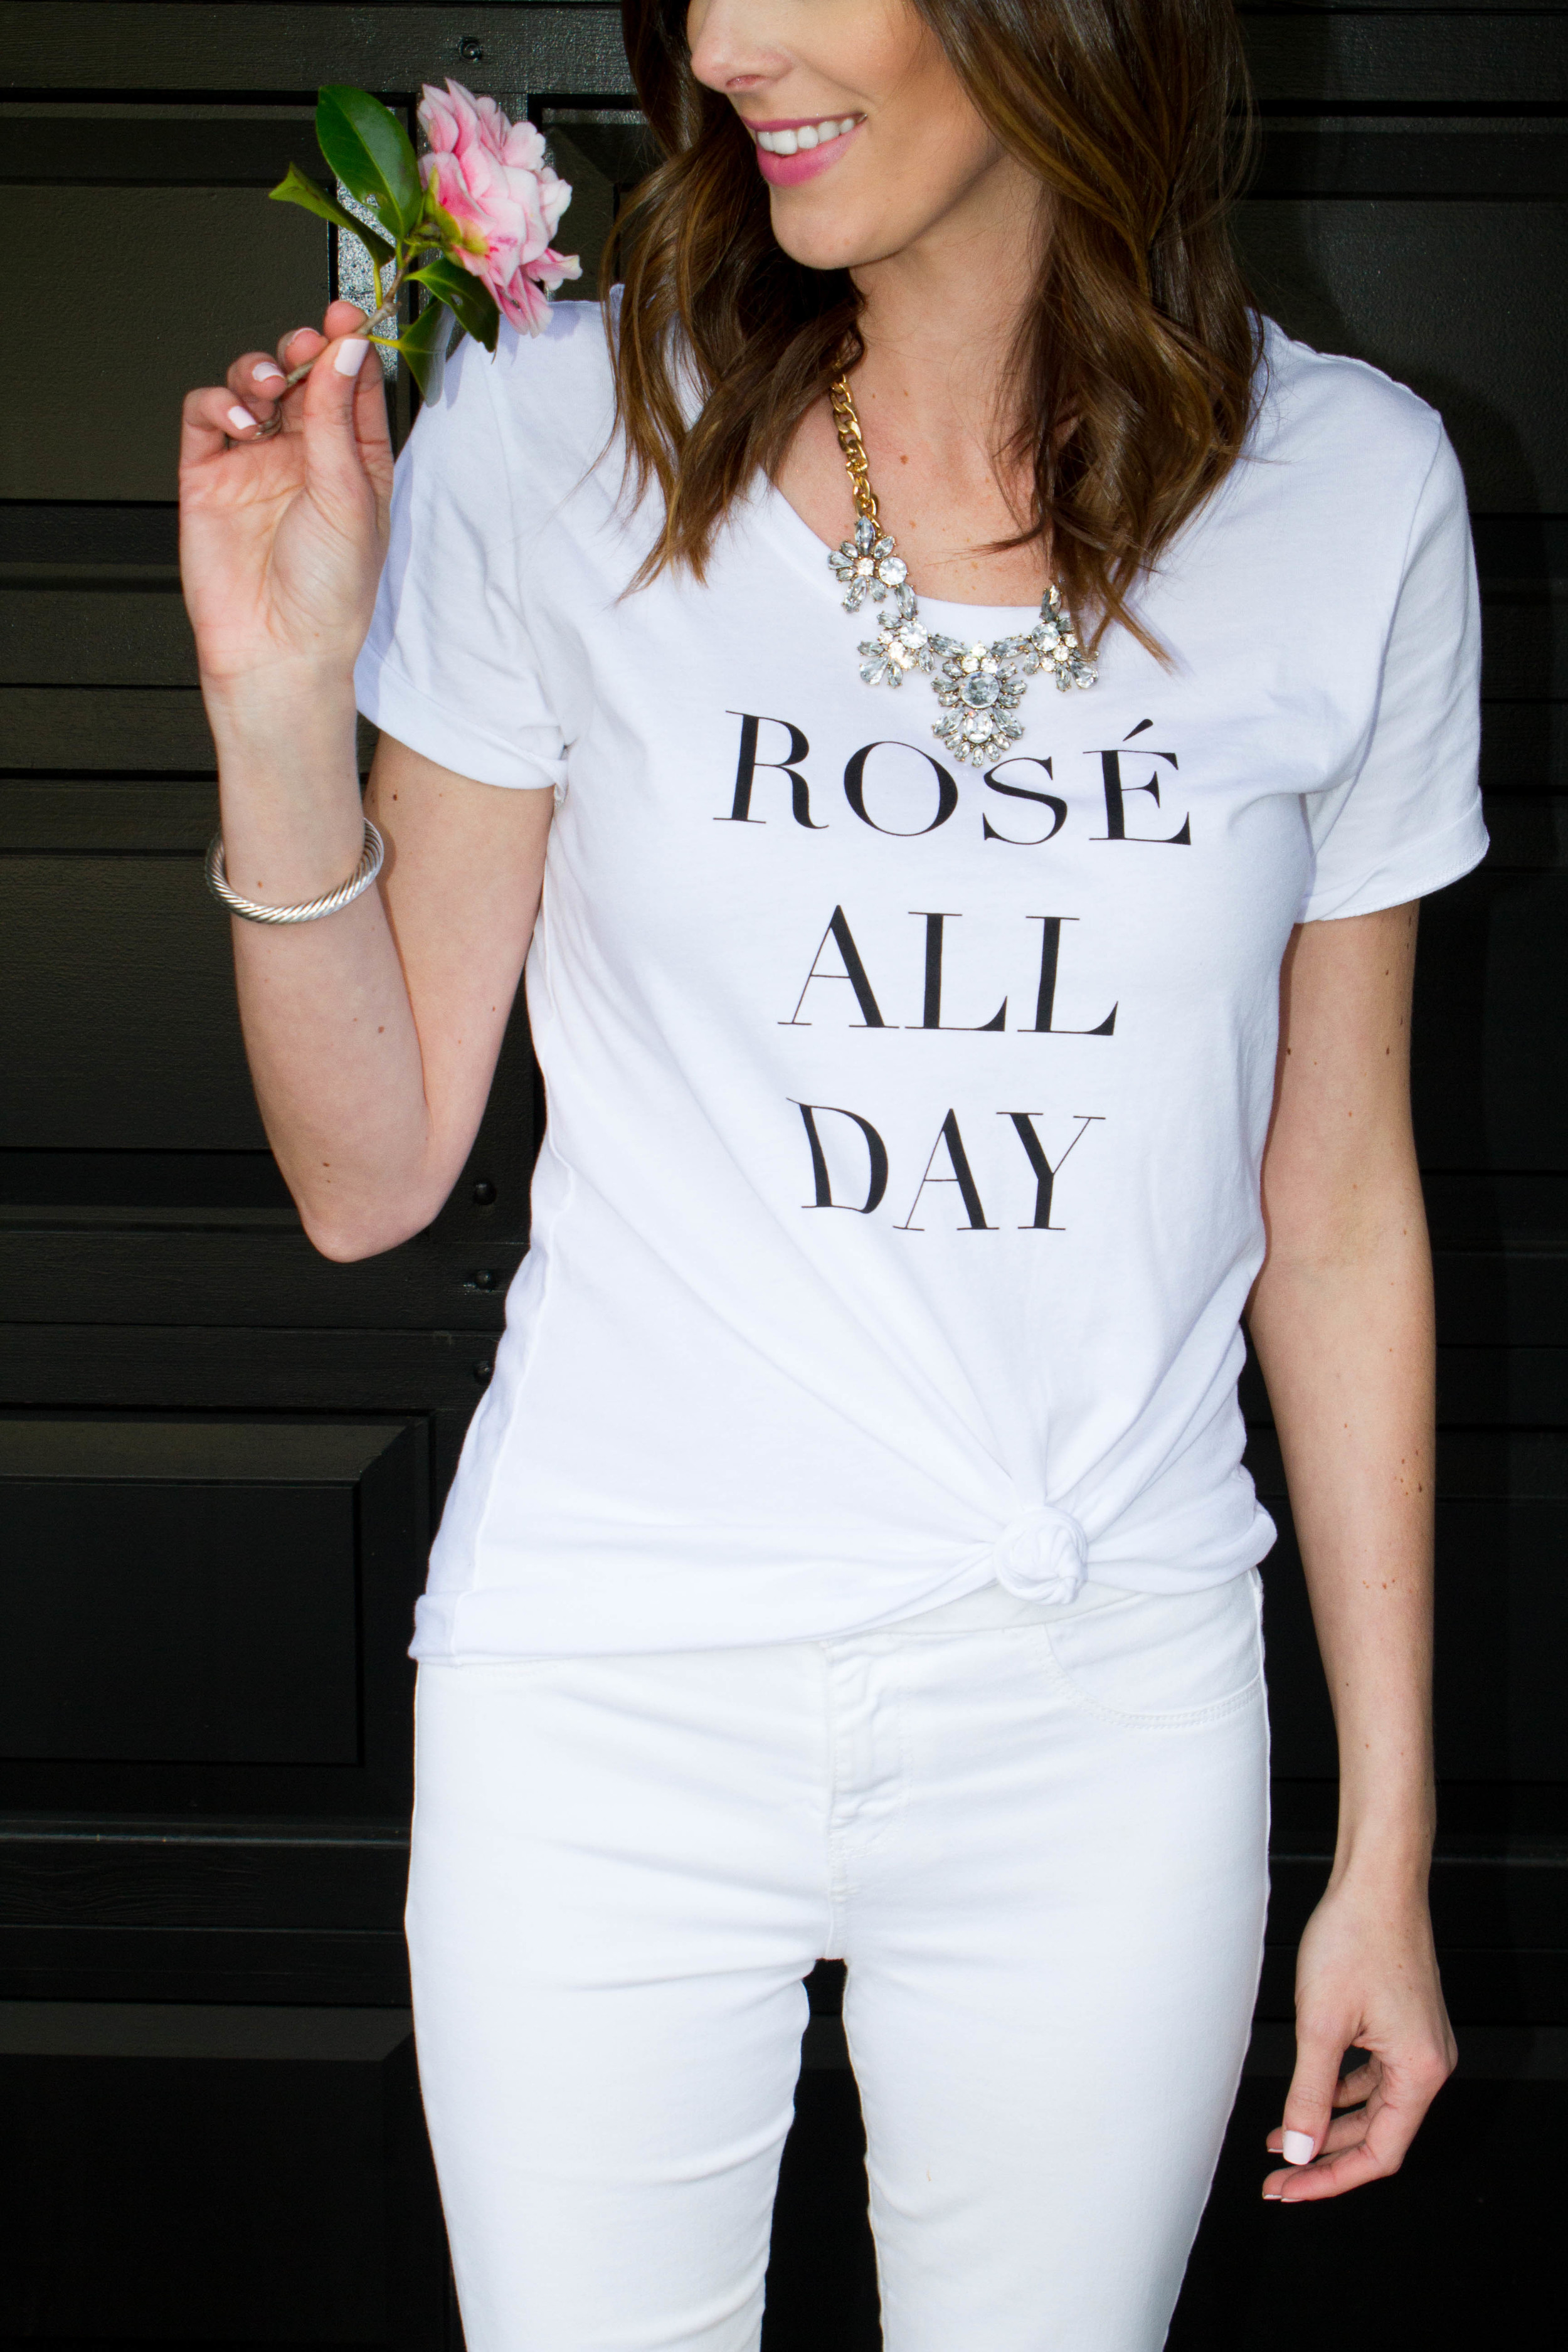 Rosé All Day T-shirt | Perfect for day drinking, brunching or lounging around